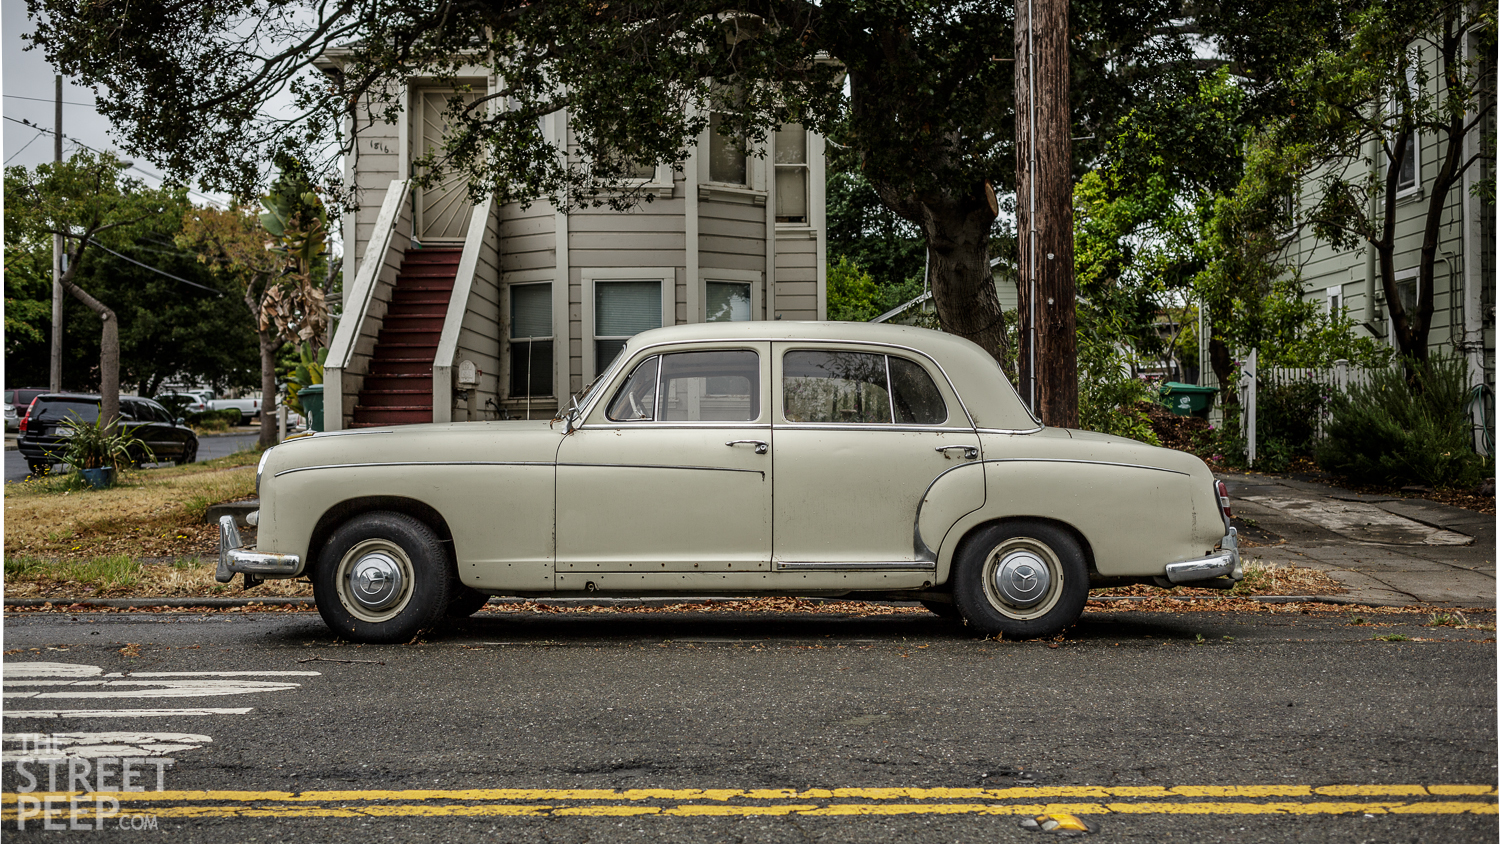 The street peep 1958 mercedes benz 220s for 1958 mercedes benz 220s for sale